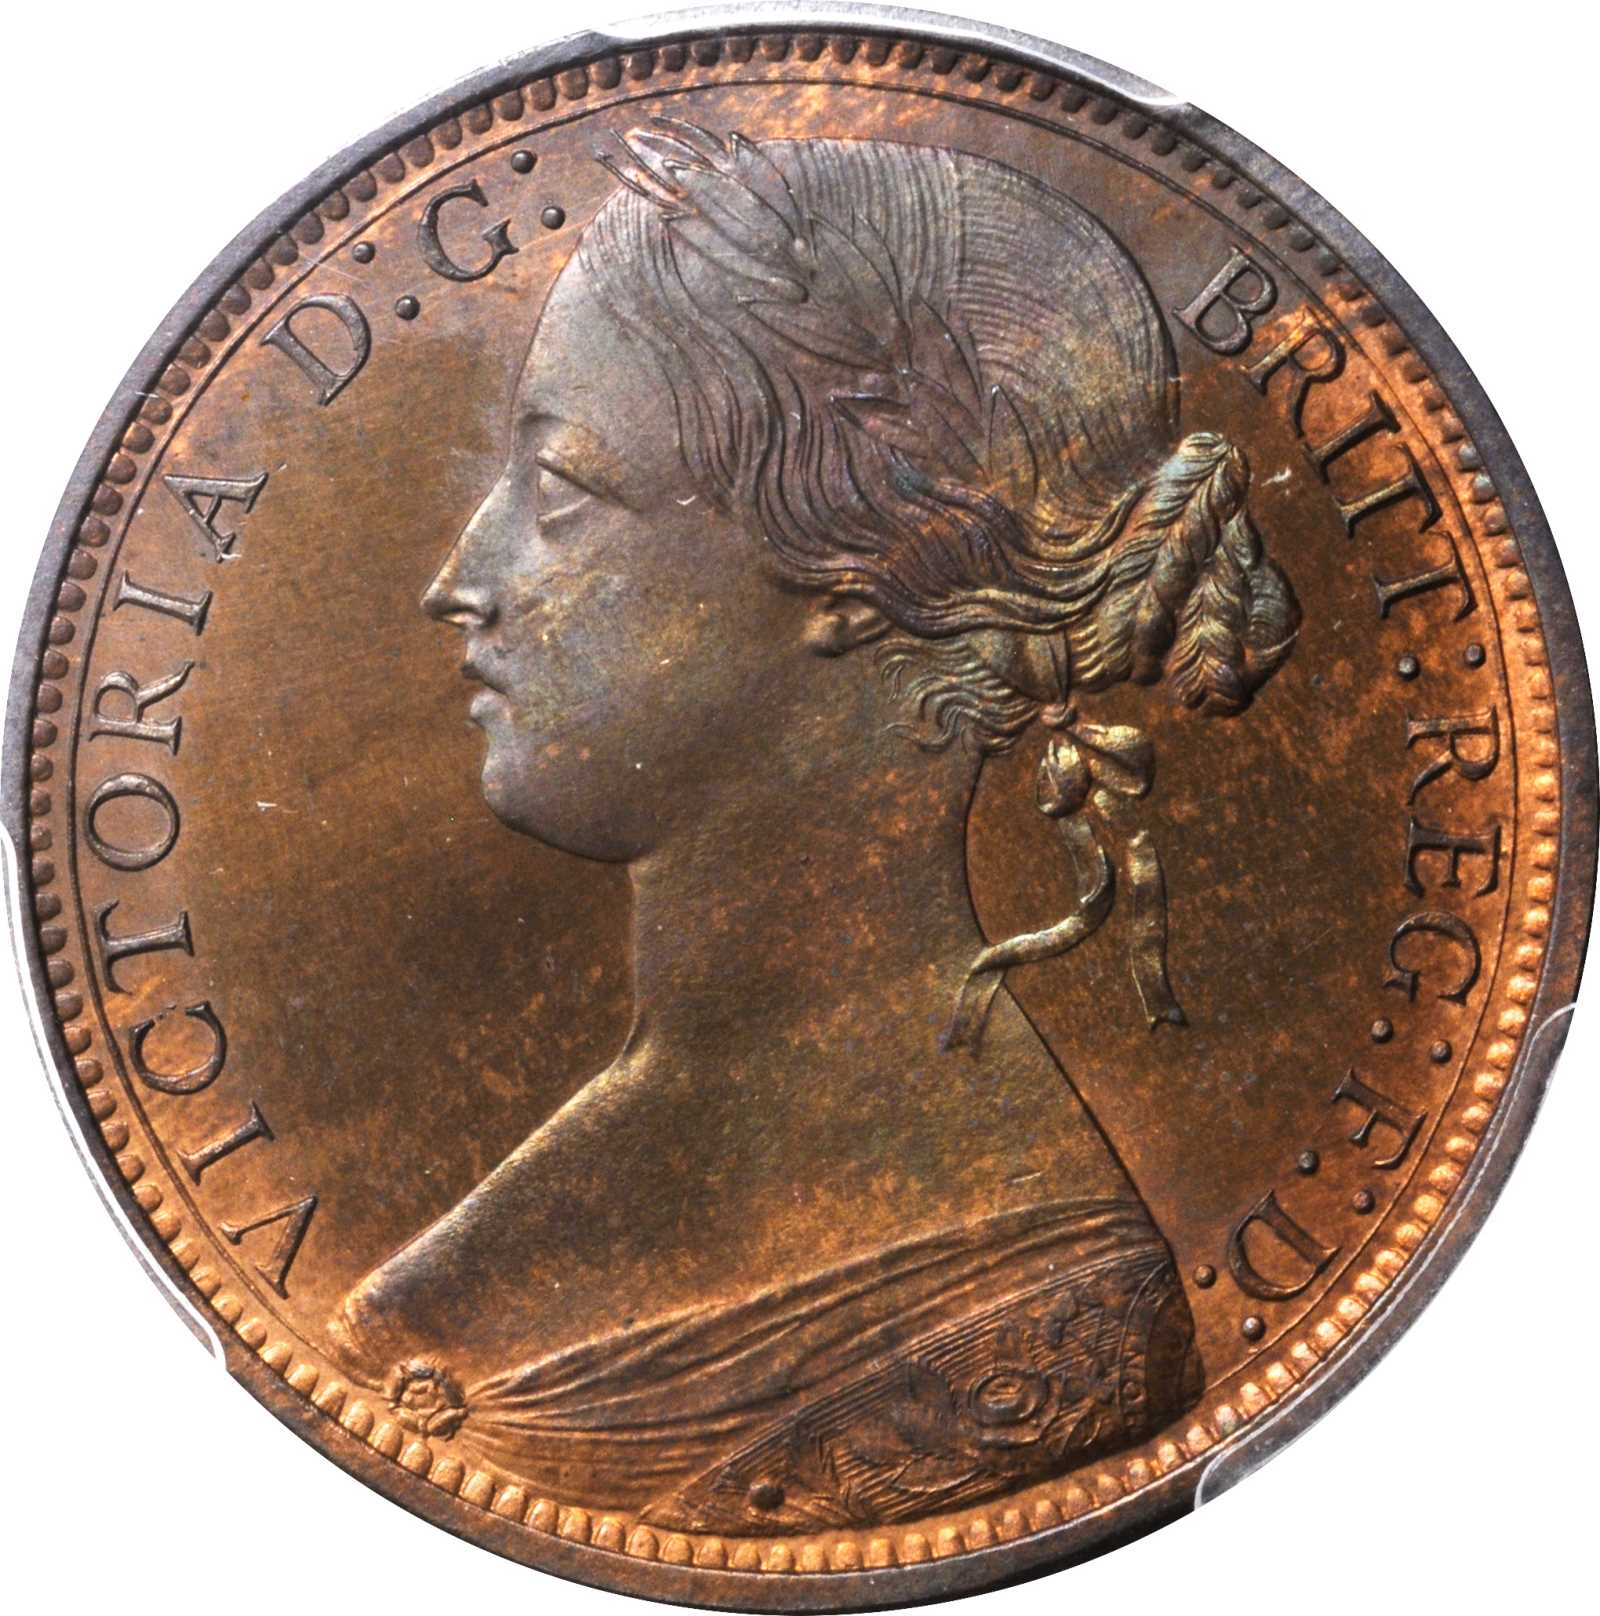 Penny 1861: Photo Great Britain 1861 penny